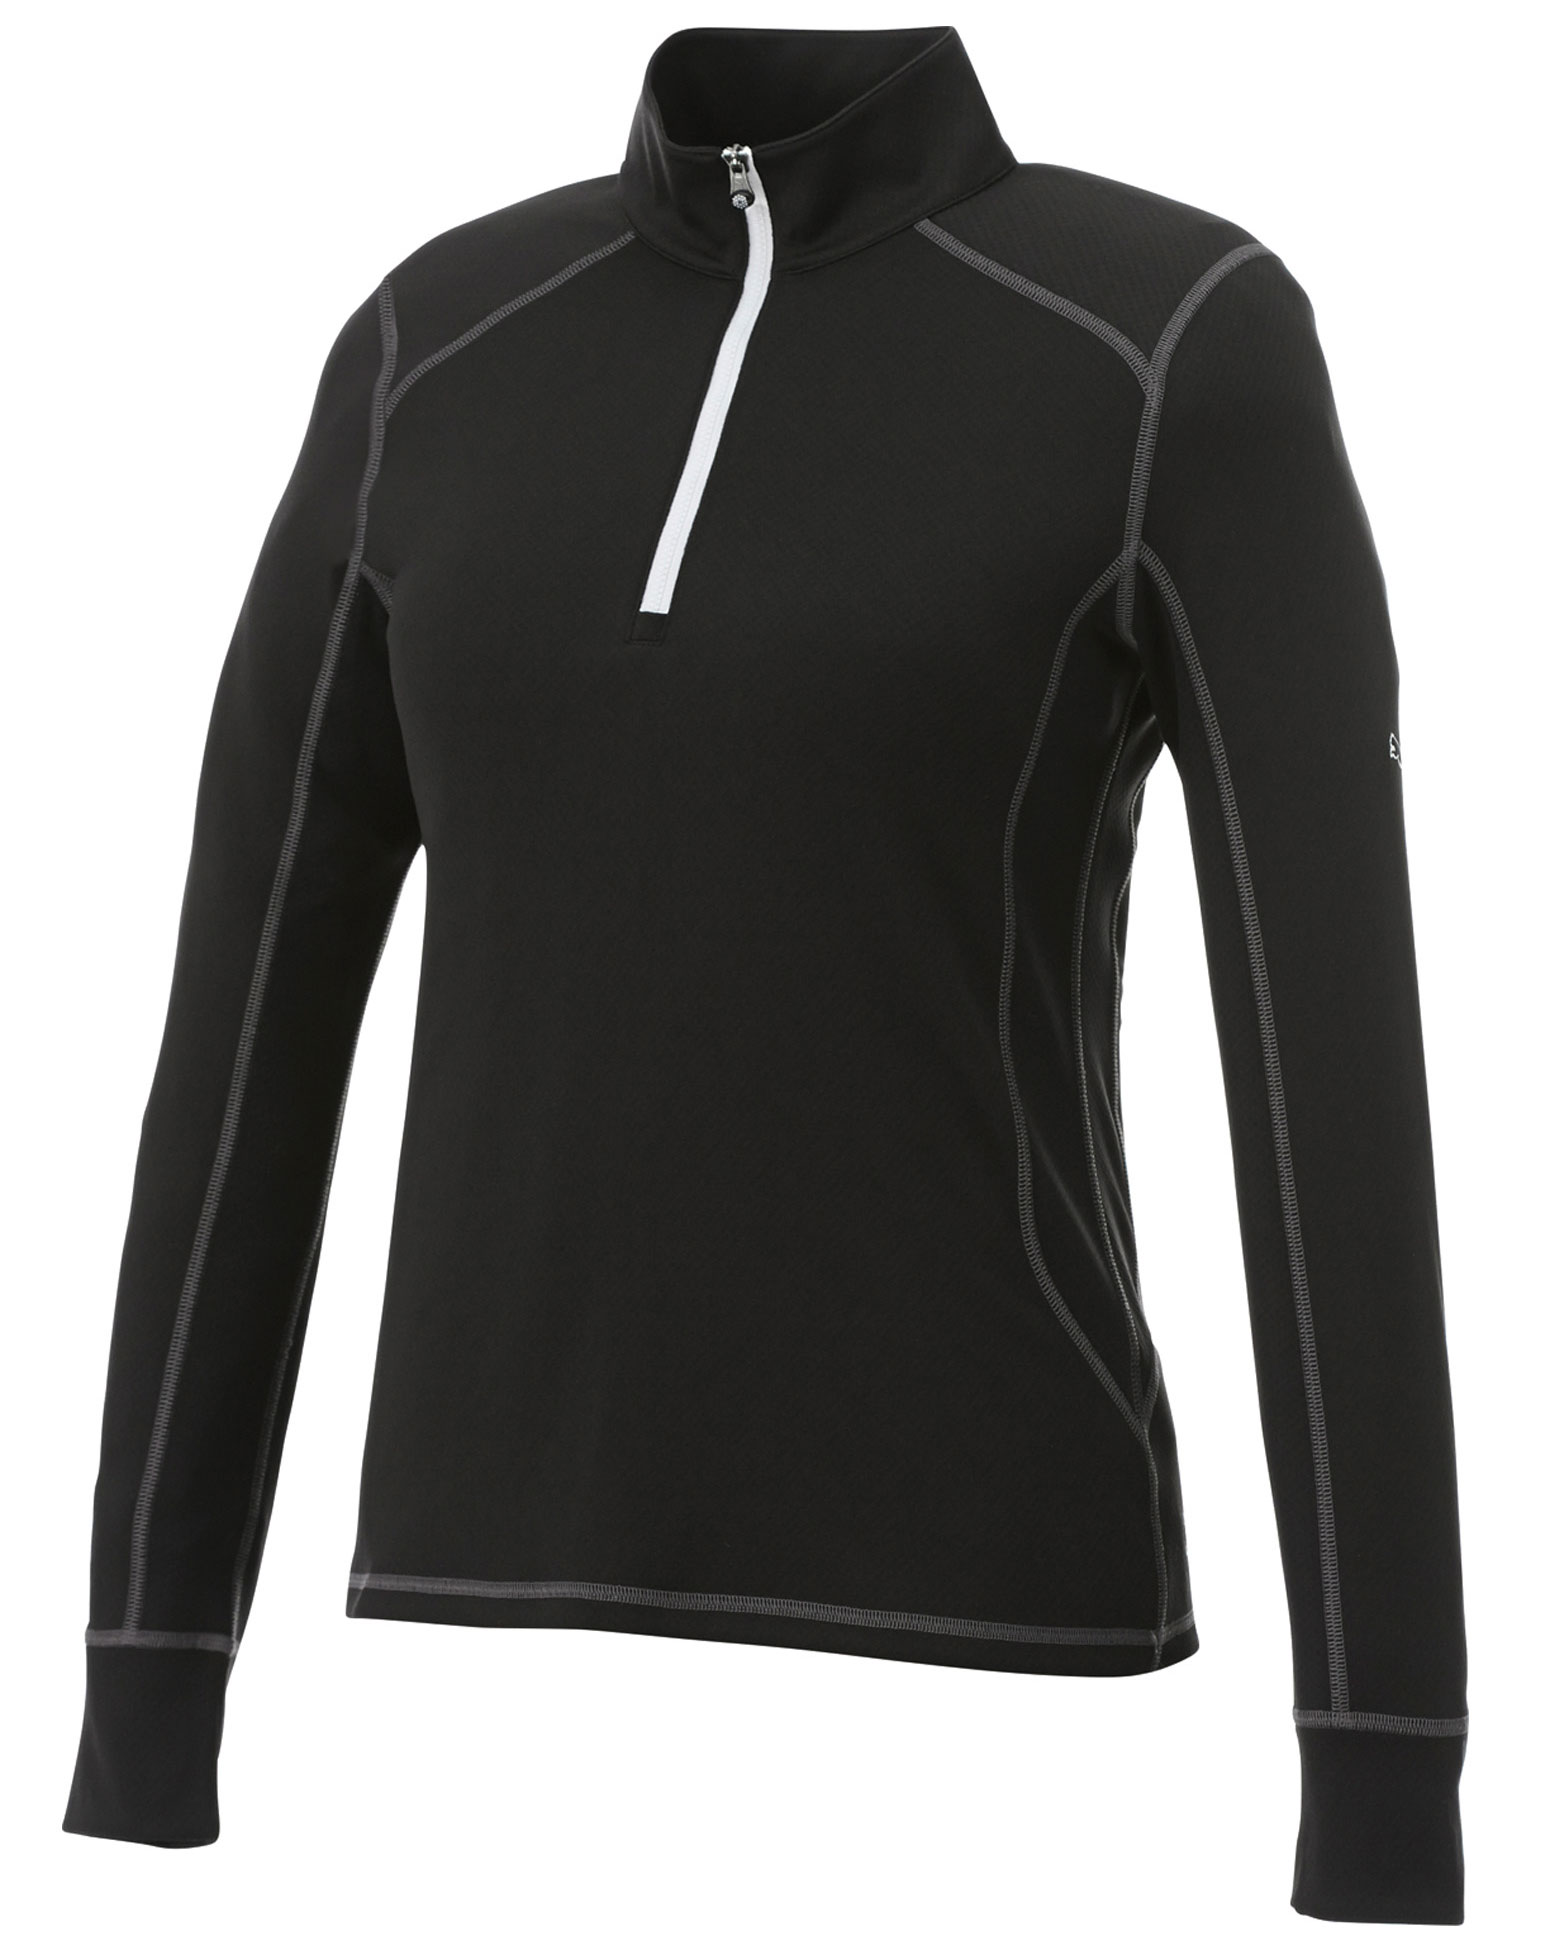 Puma Womens Golf Tech 1/2-Zip Top